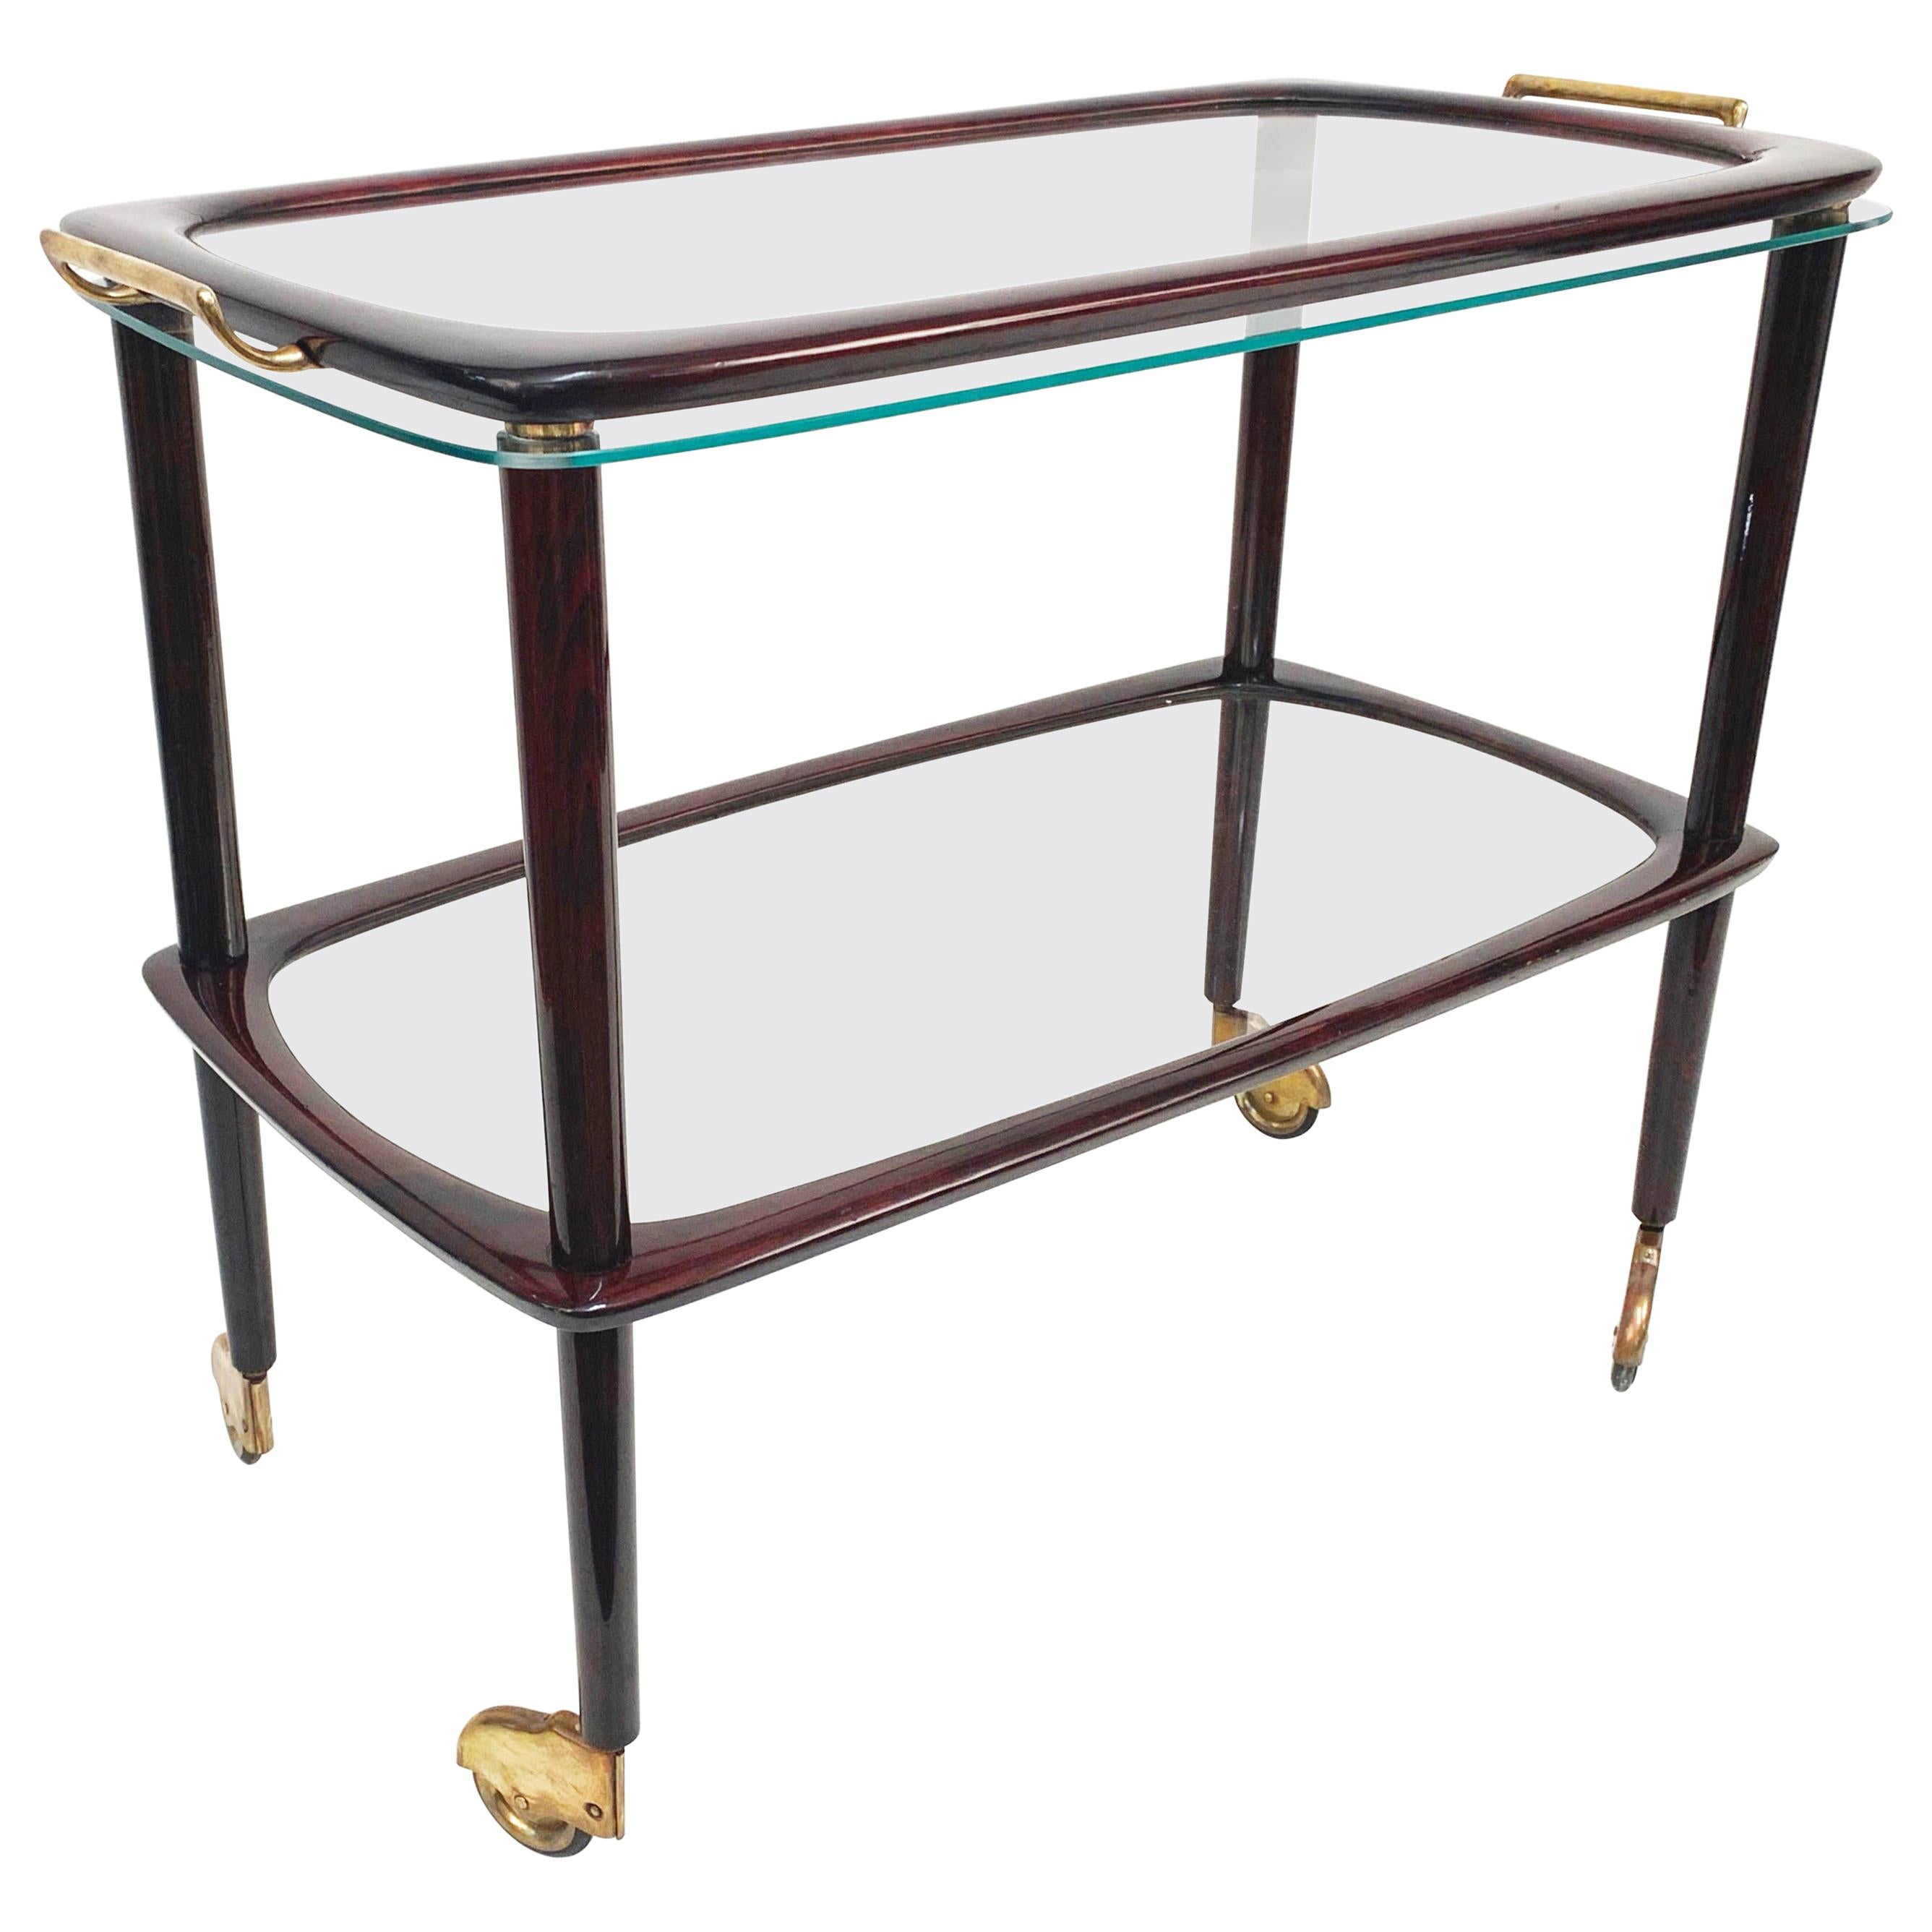 Midcentury Cesare Lacca Wood Italian Bar Cart with Glass Serving Tray, 1950s